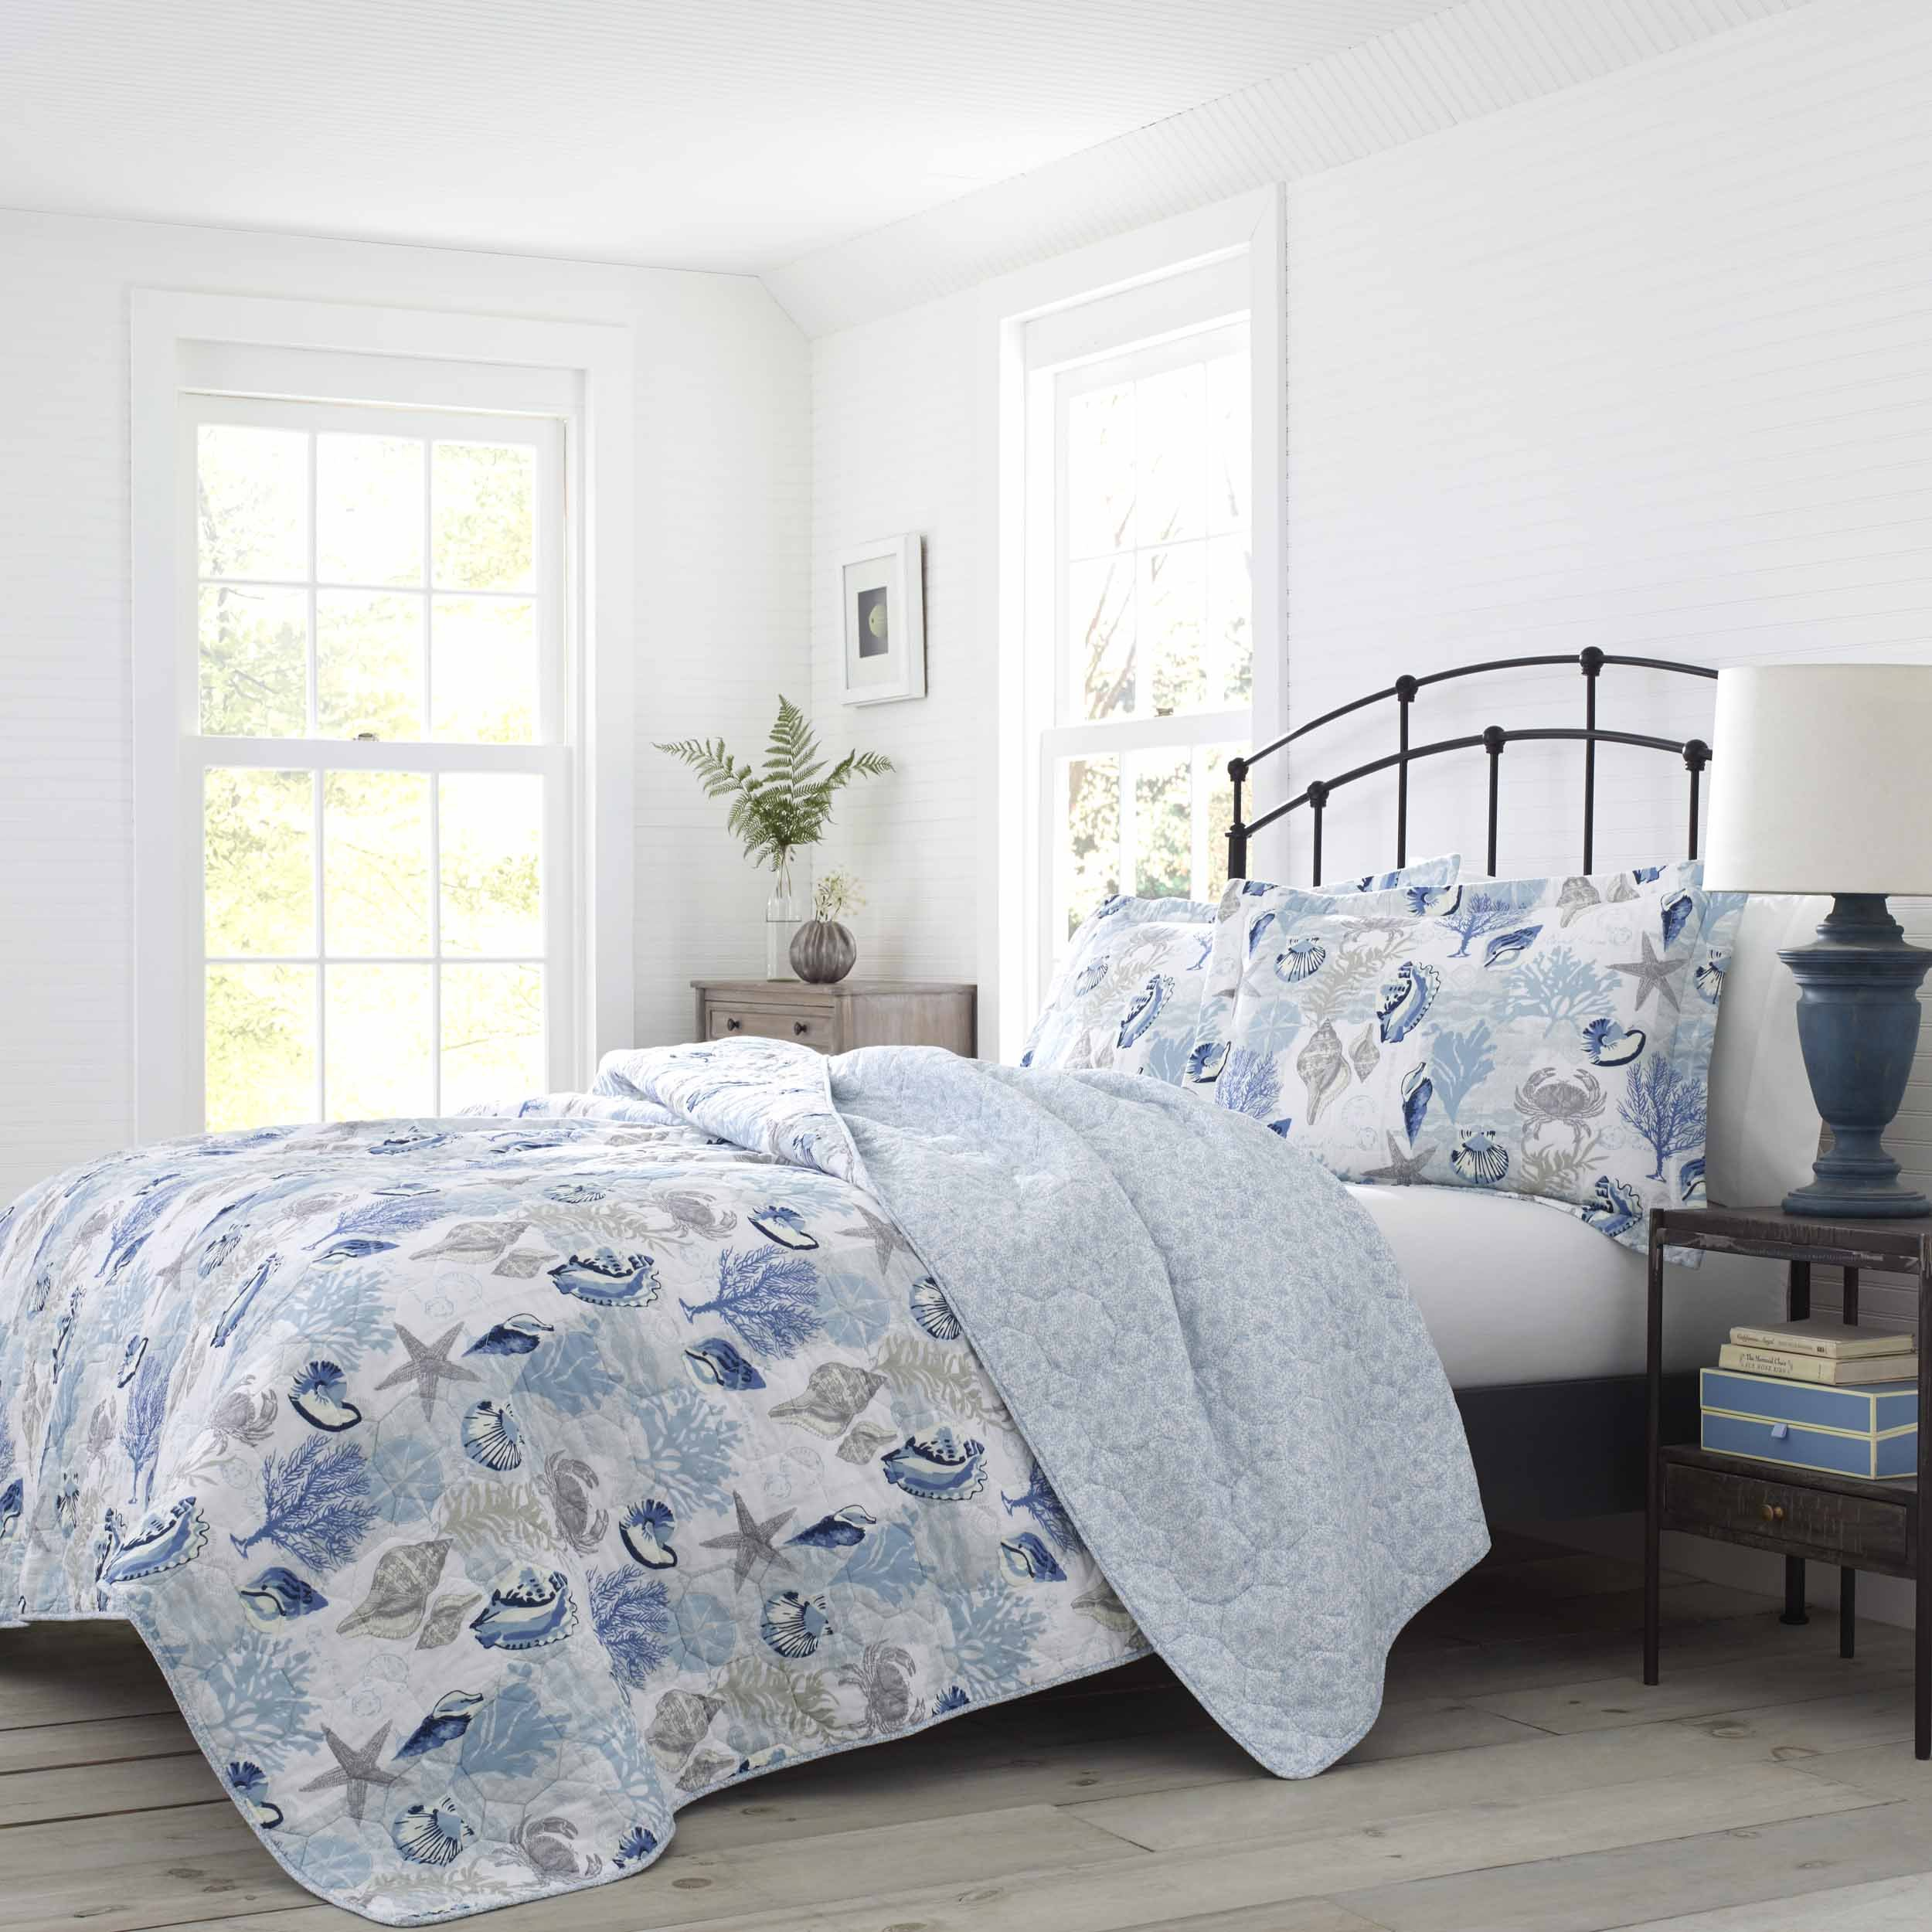 Laura Ashley Surf Spray Quilt Set, Twin, Pastel Blue